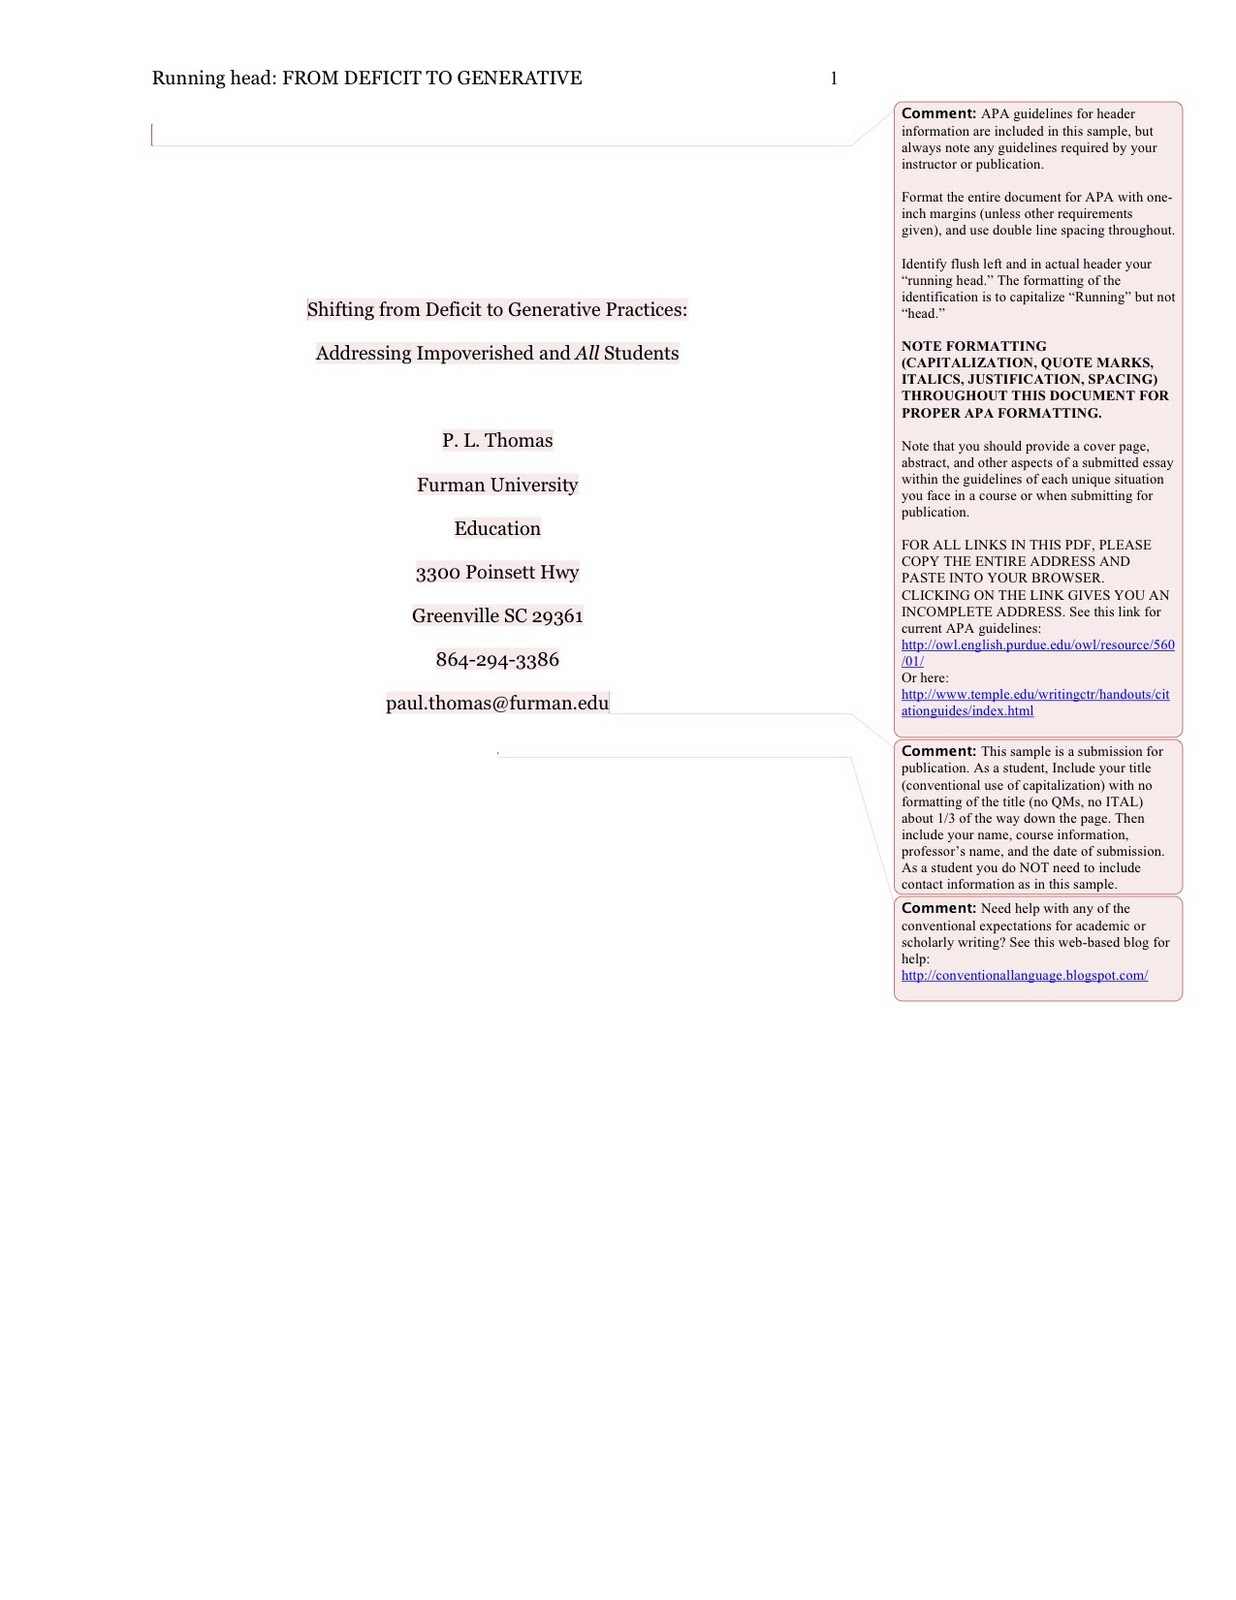 008 Apa Page1 Research Paper Purdue Stunning Owl Outline Topics Conclusion Full